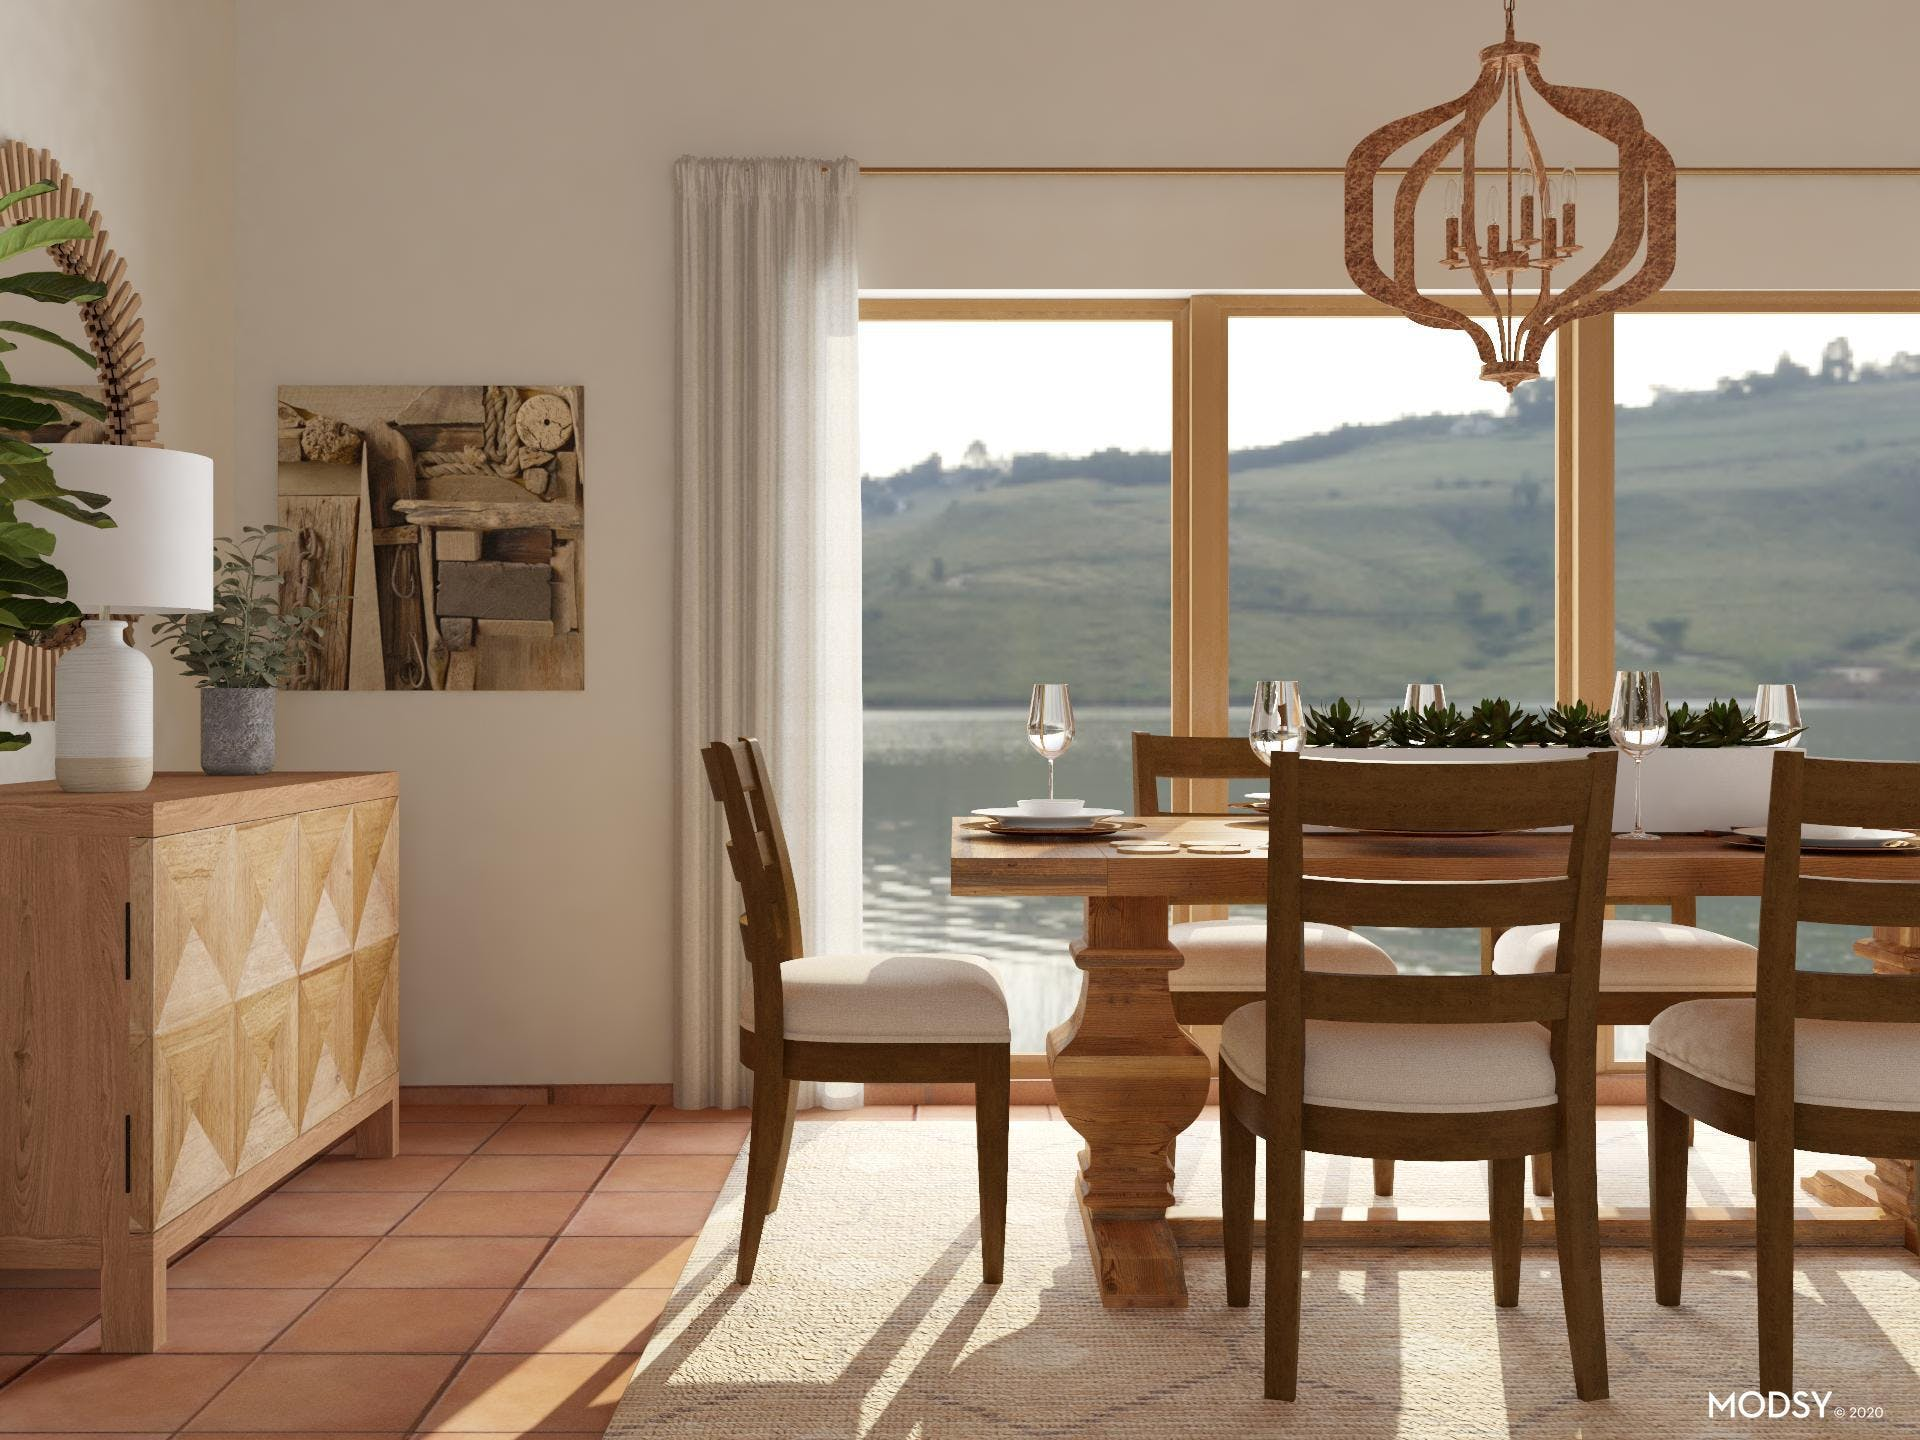 Rustic Style Dining: Inviting Room